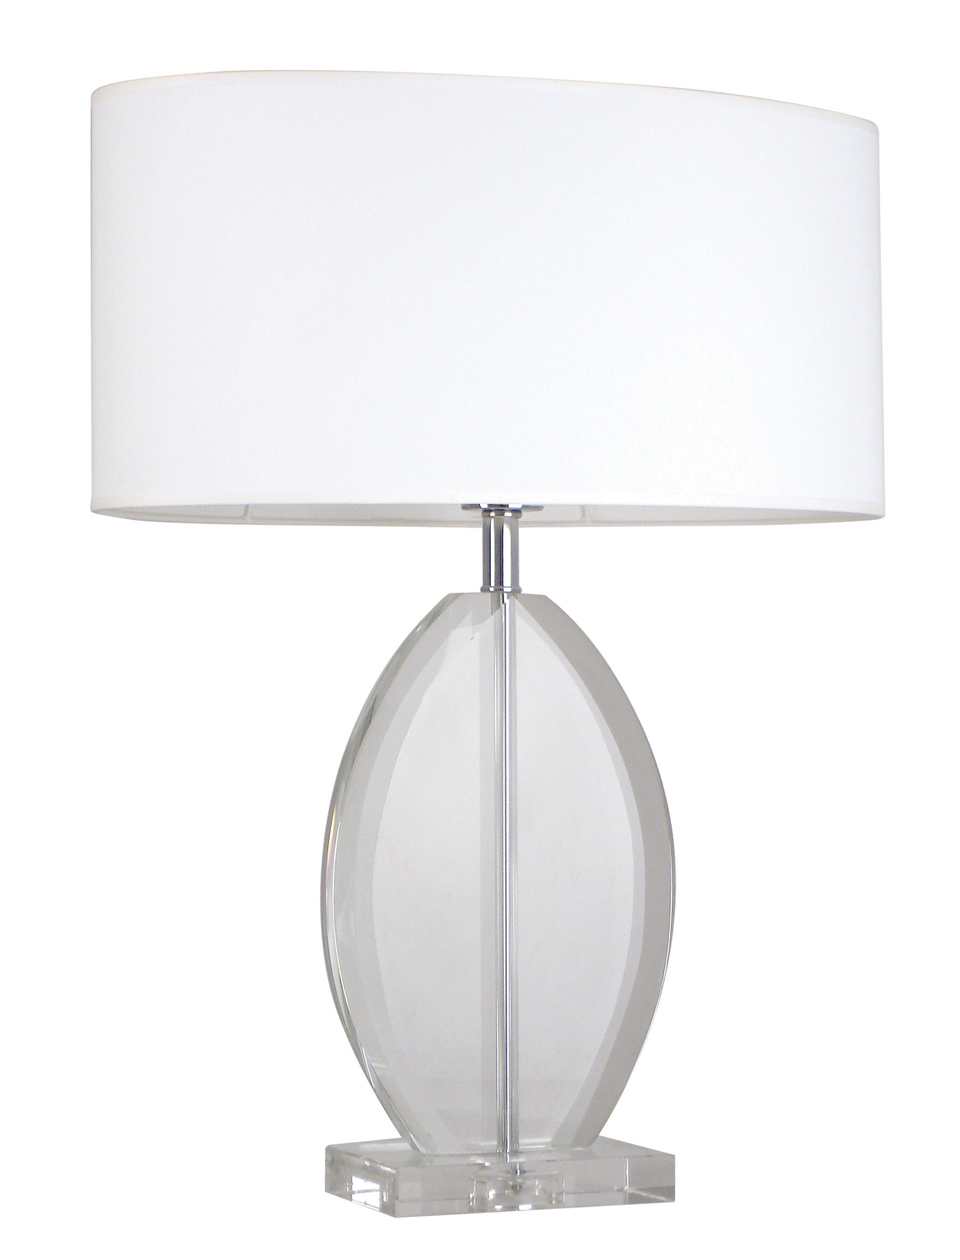 White Oval Lampshade Table Lamp Chromed Metal